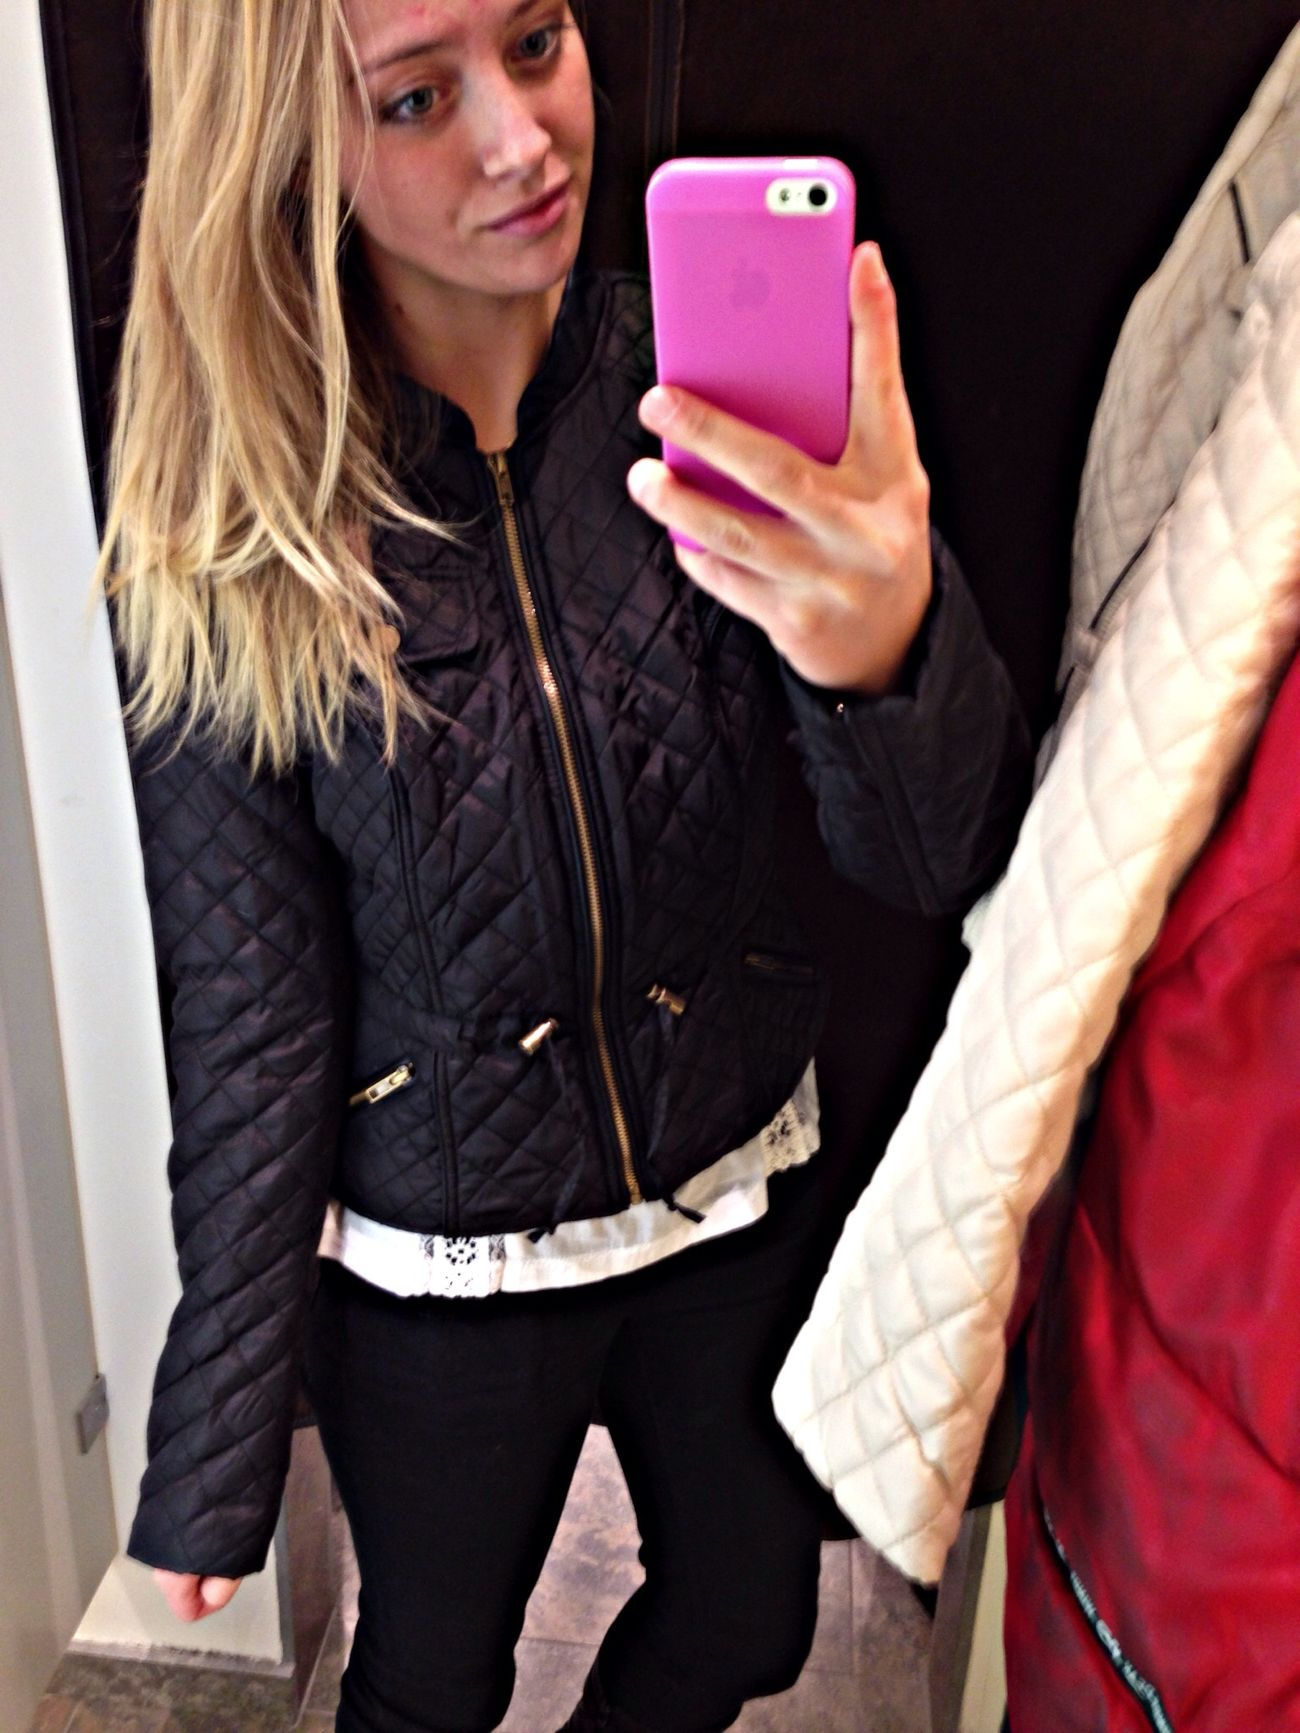 Love my new jacket from VEROMODA!❤️ Shopping